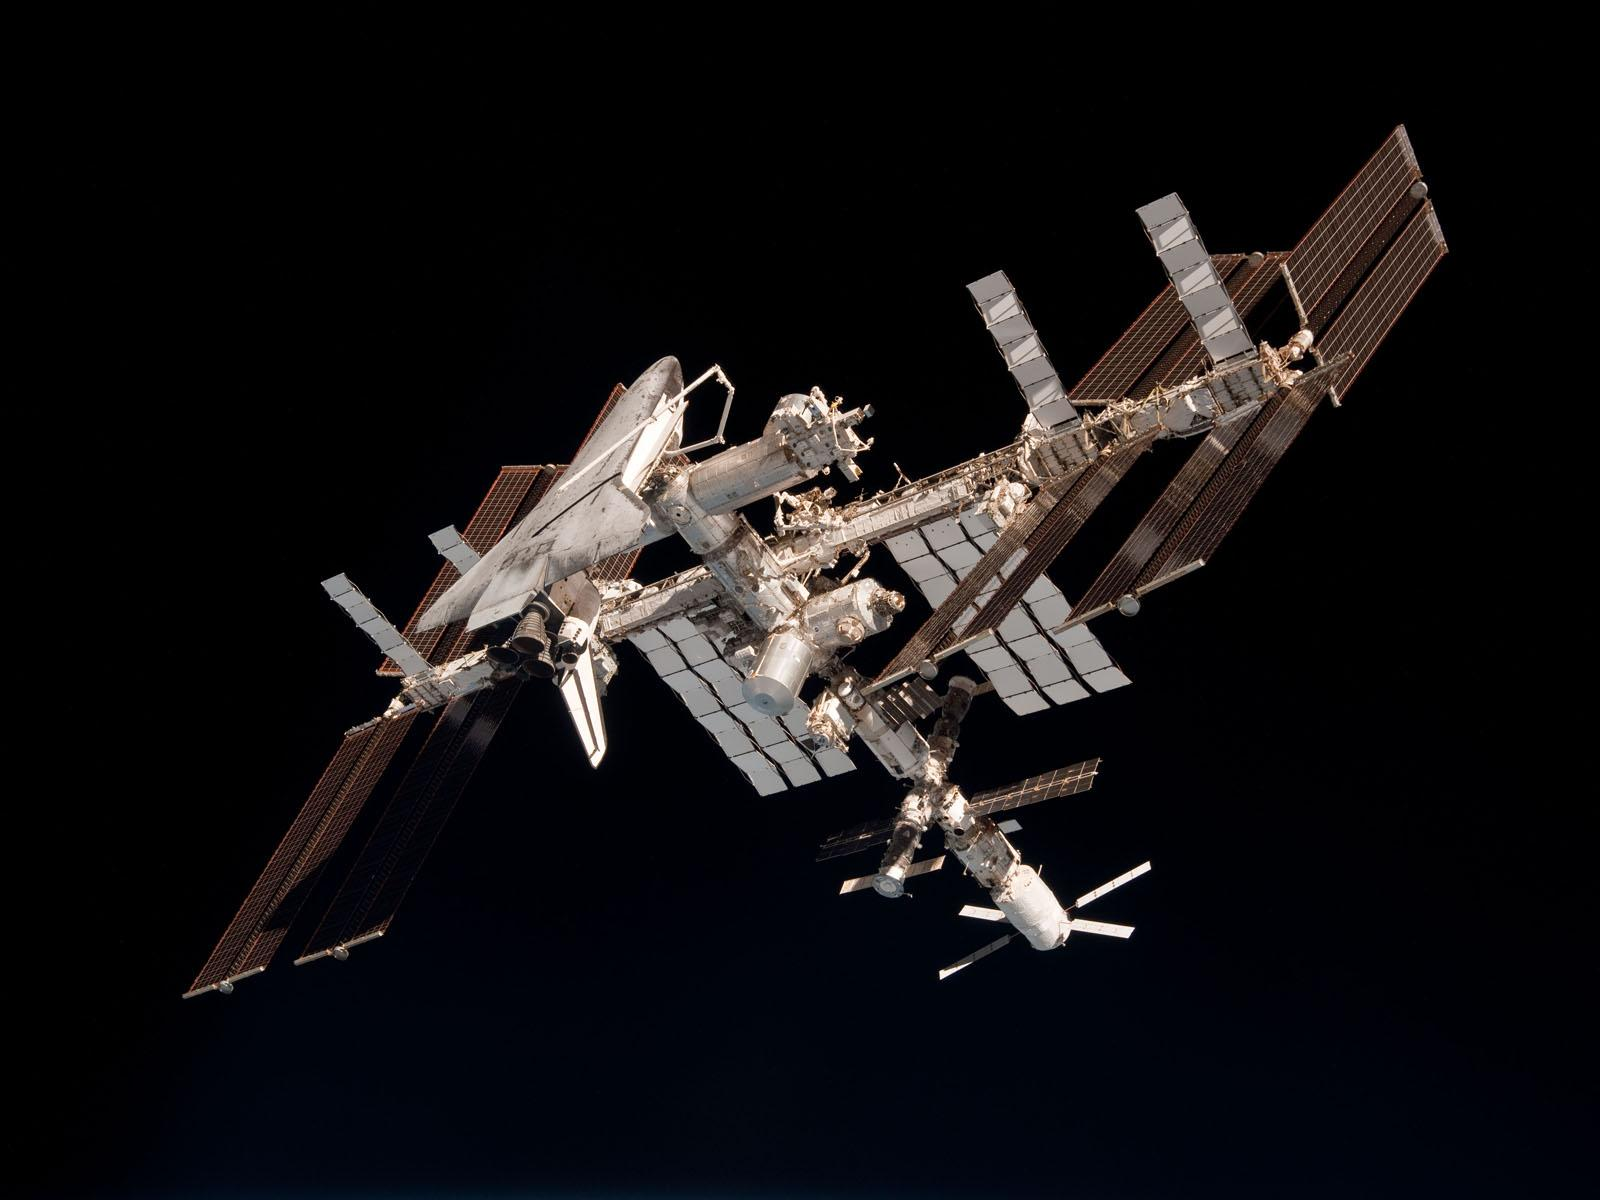 ISS and the Docked Space Shuttle Endeavour